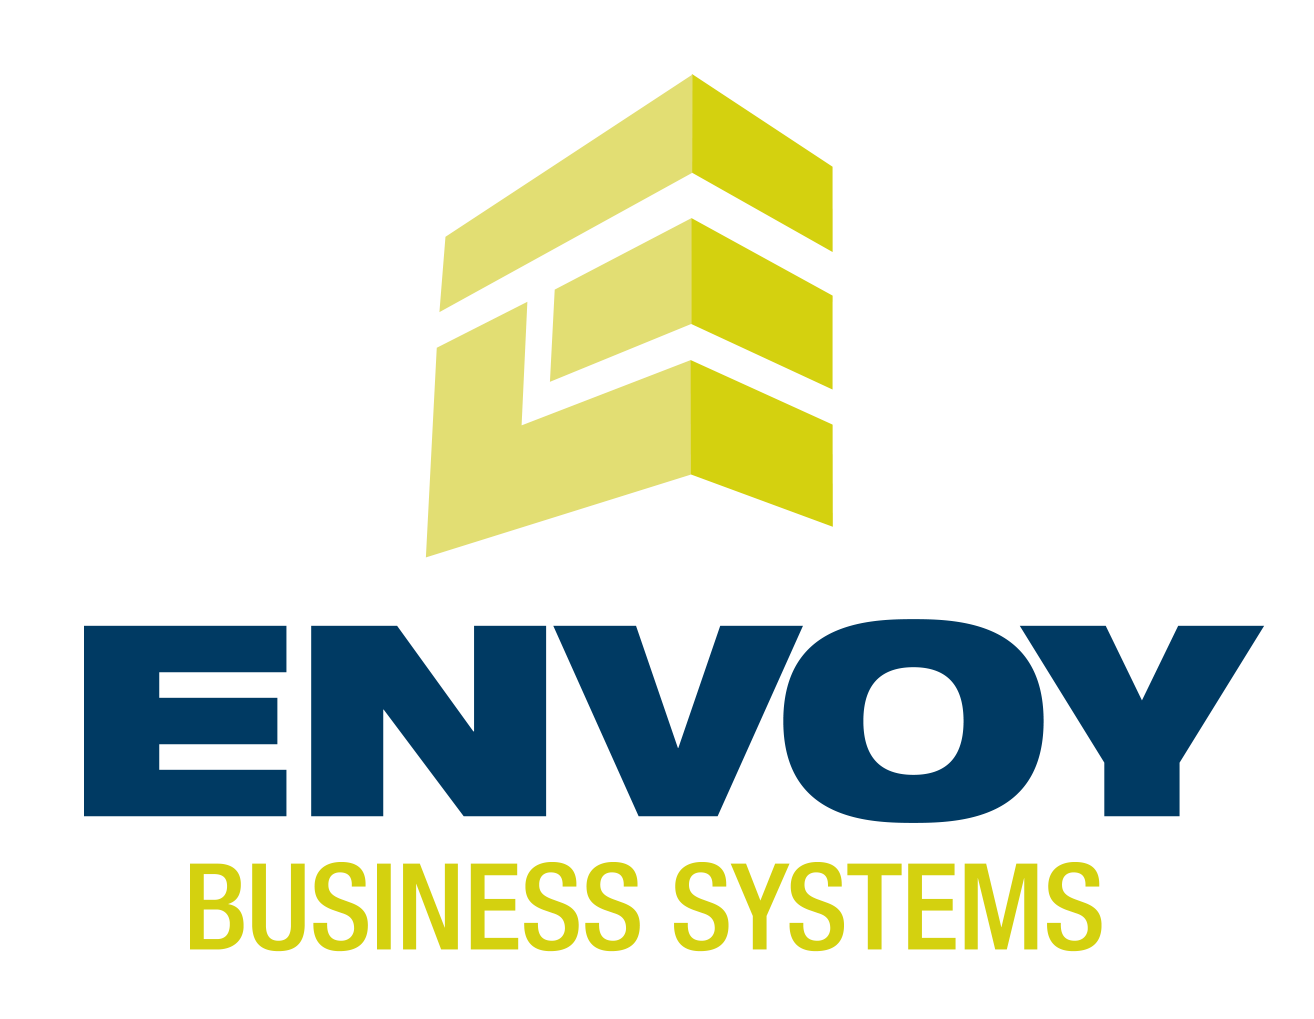 Envoy Business Systems